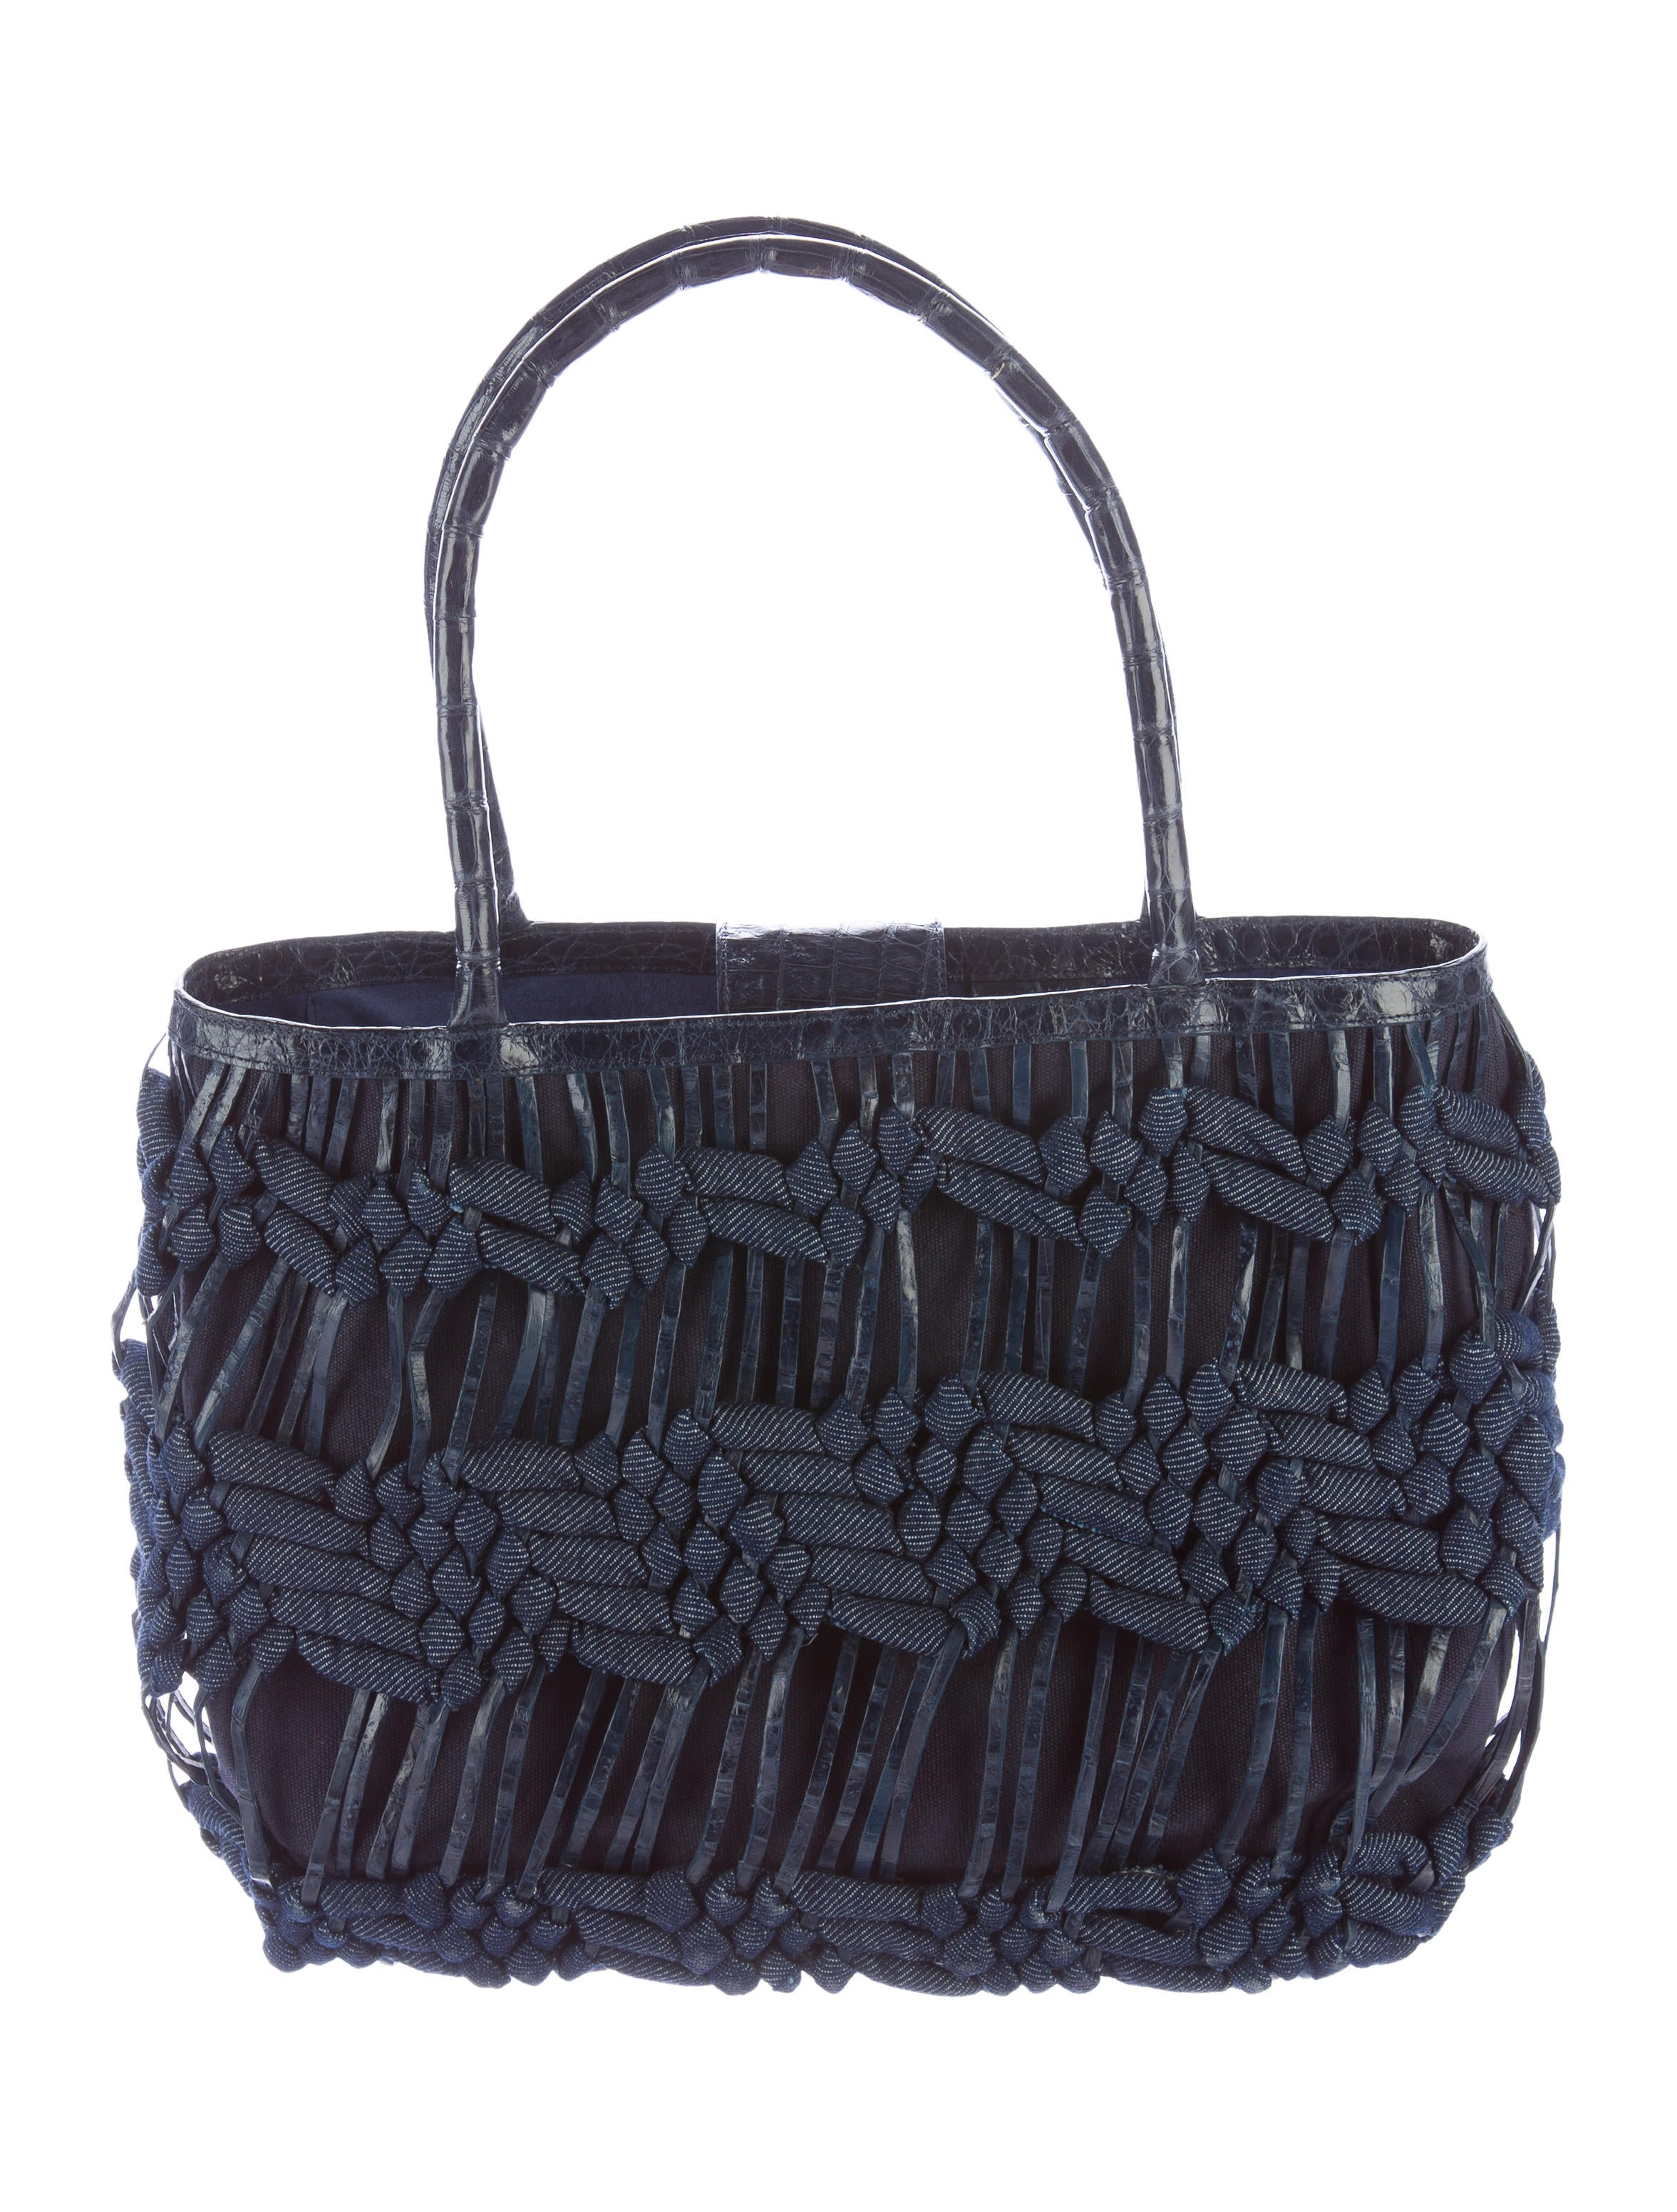 Nancy gonzalez woven crocodile tote handbags nan22686 for Nancy gonzalez crocodile tote